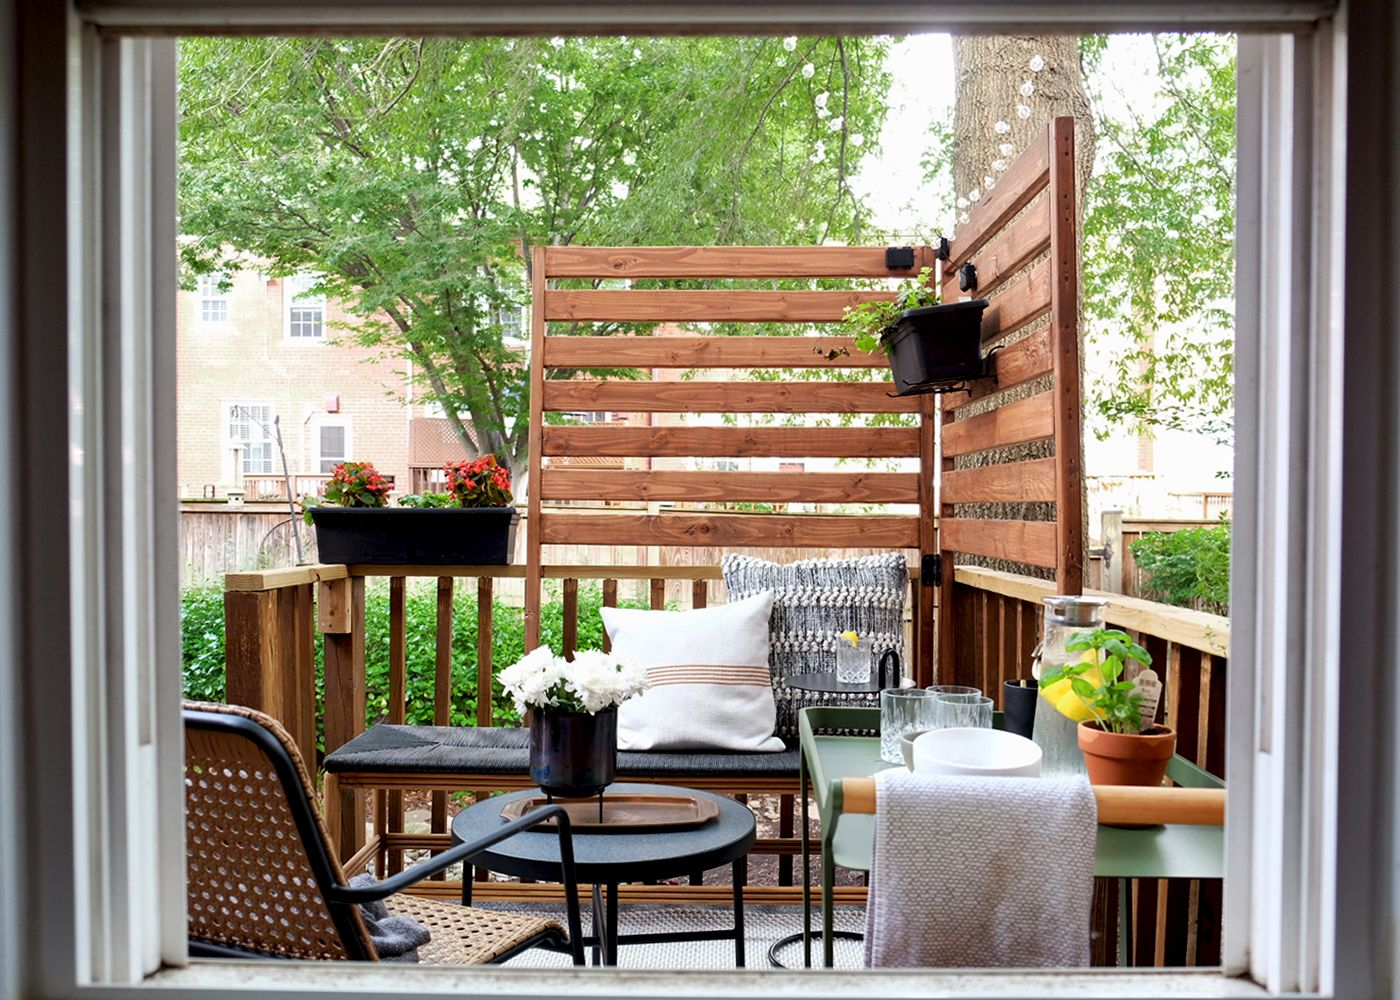 19 small deck ideas for summer 2021